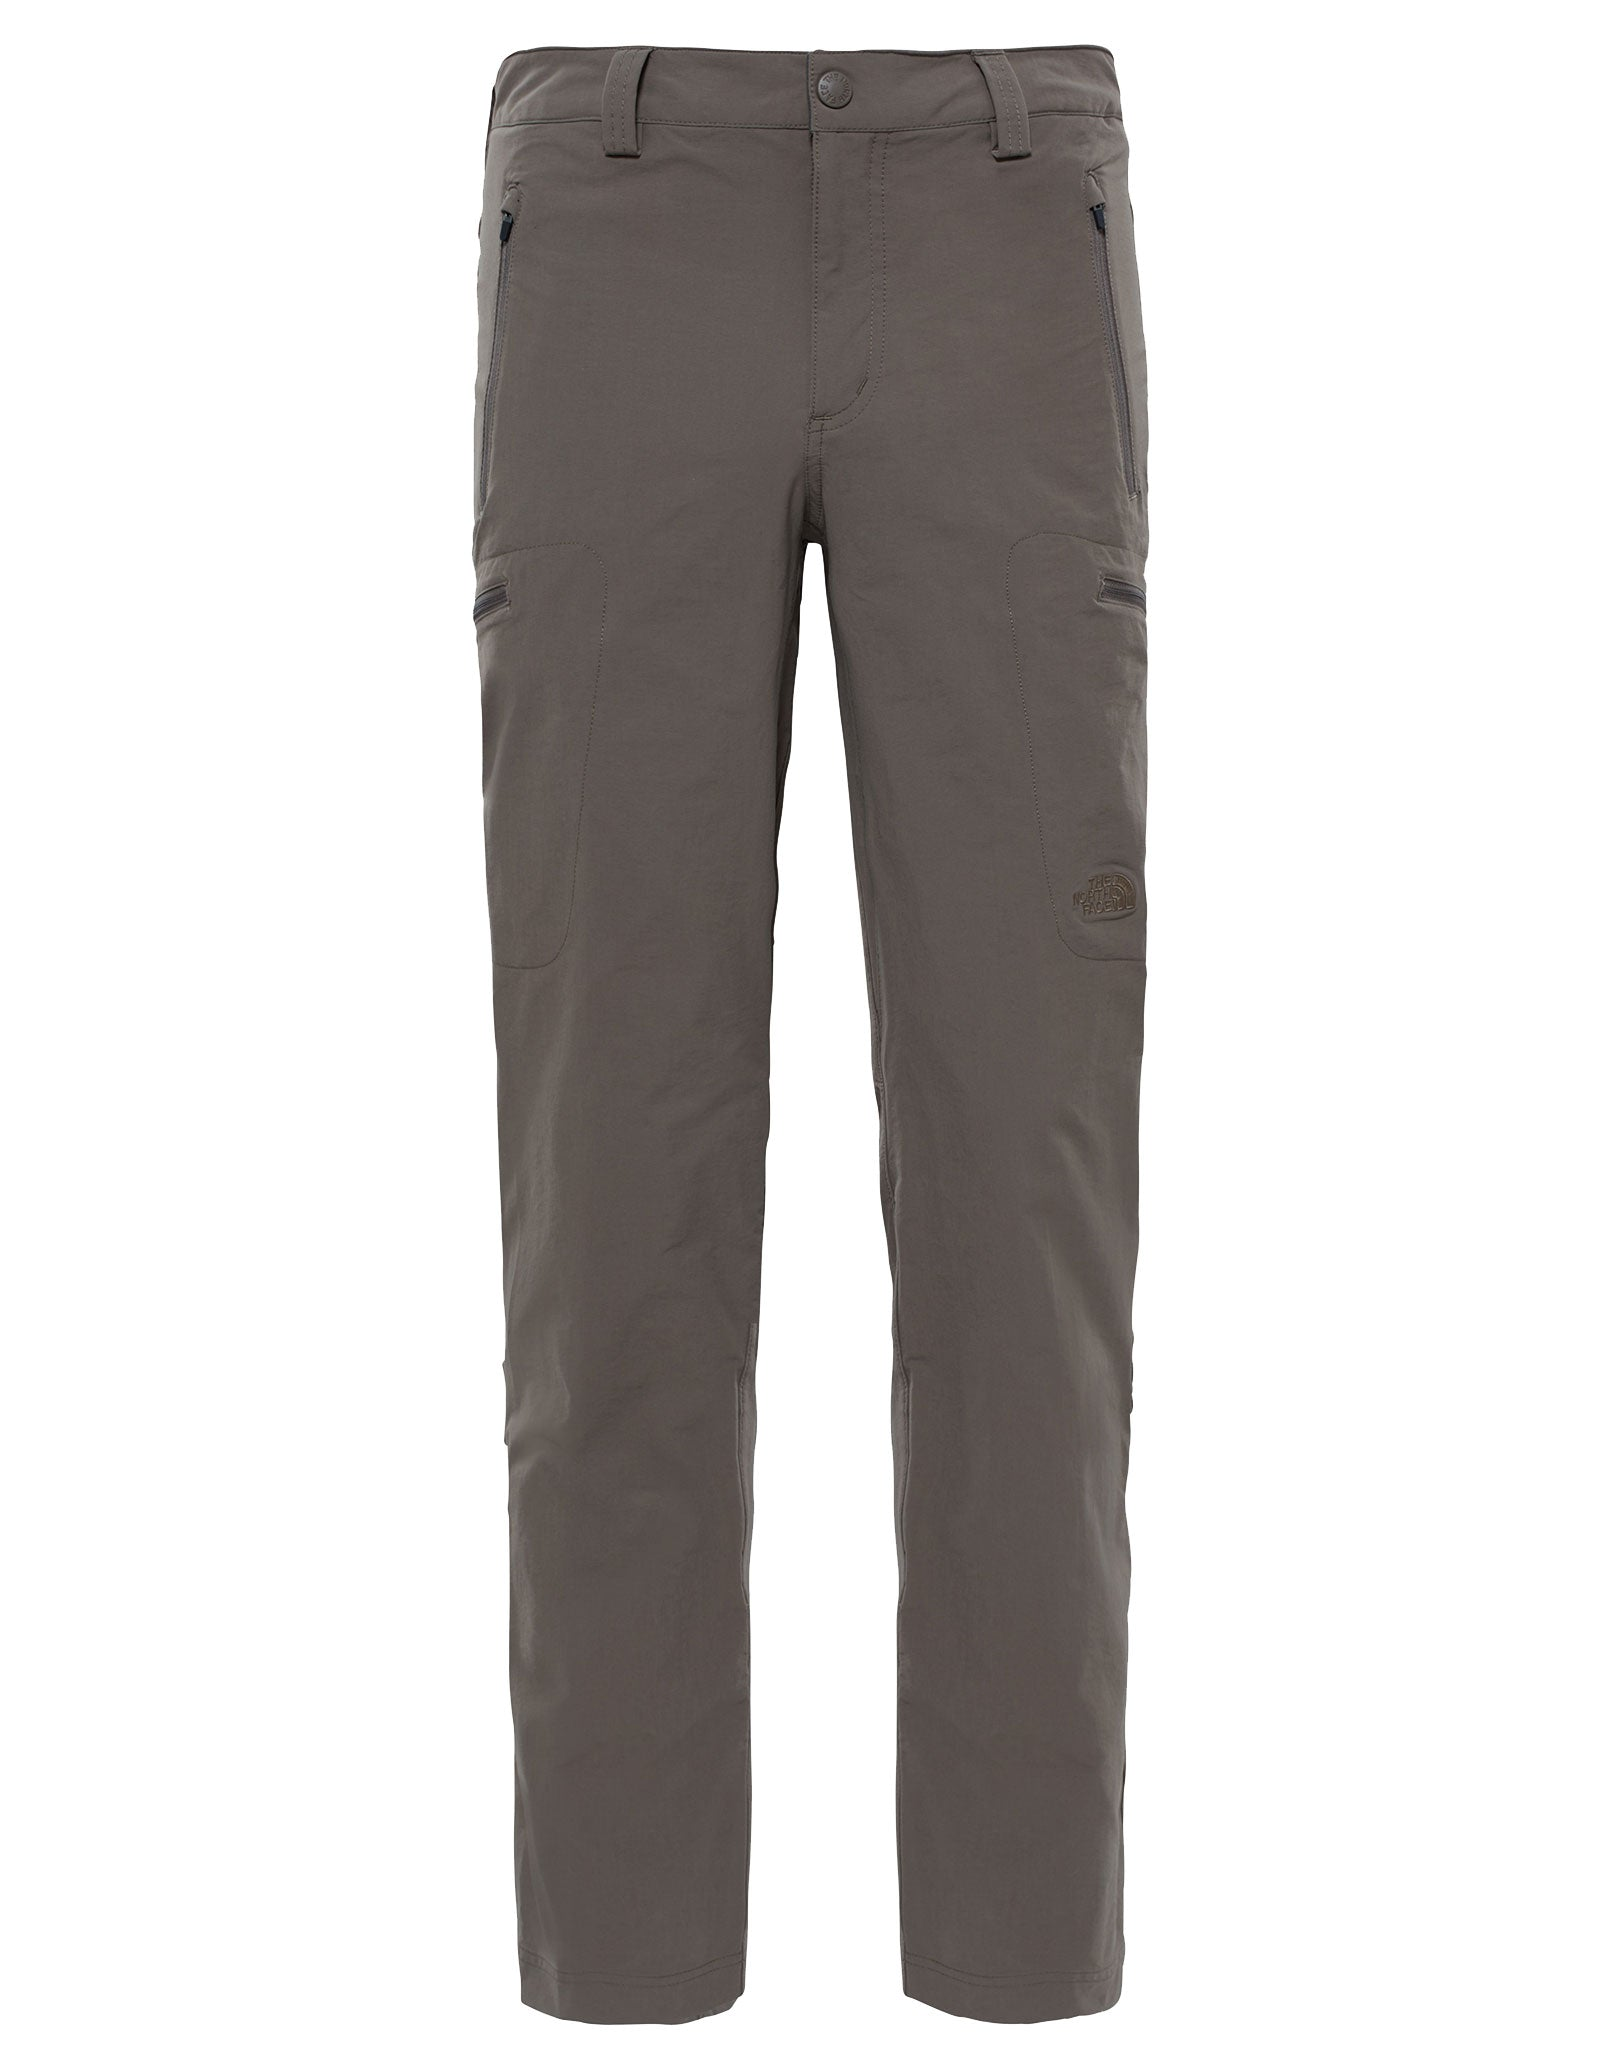 6c70df52 The North Face Mens Exploration Trousers - Weimaraner Brown | Simply ...